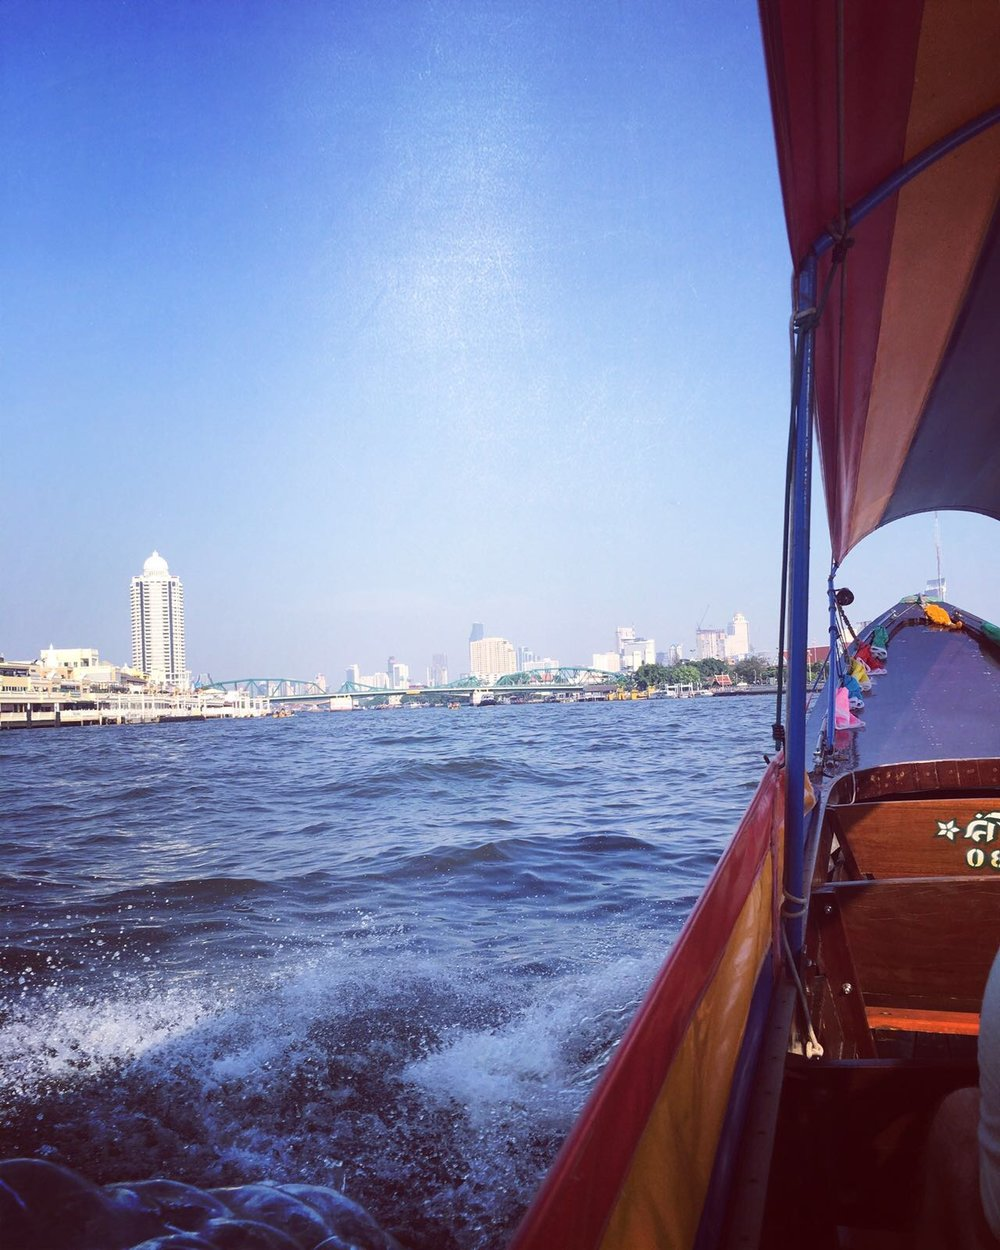 Boat tour to the Shangri-La Hotel